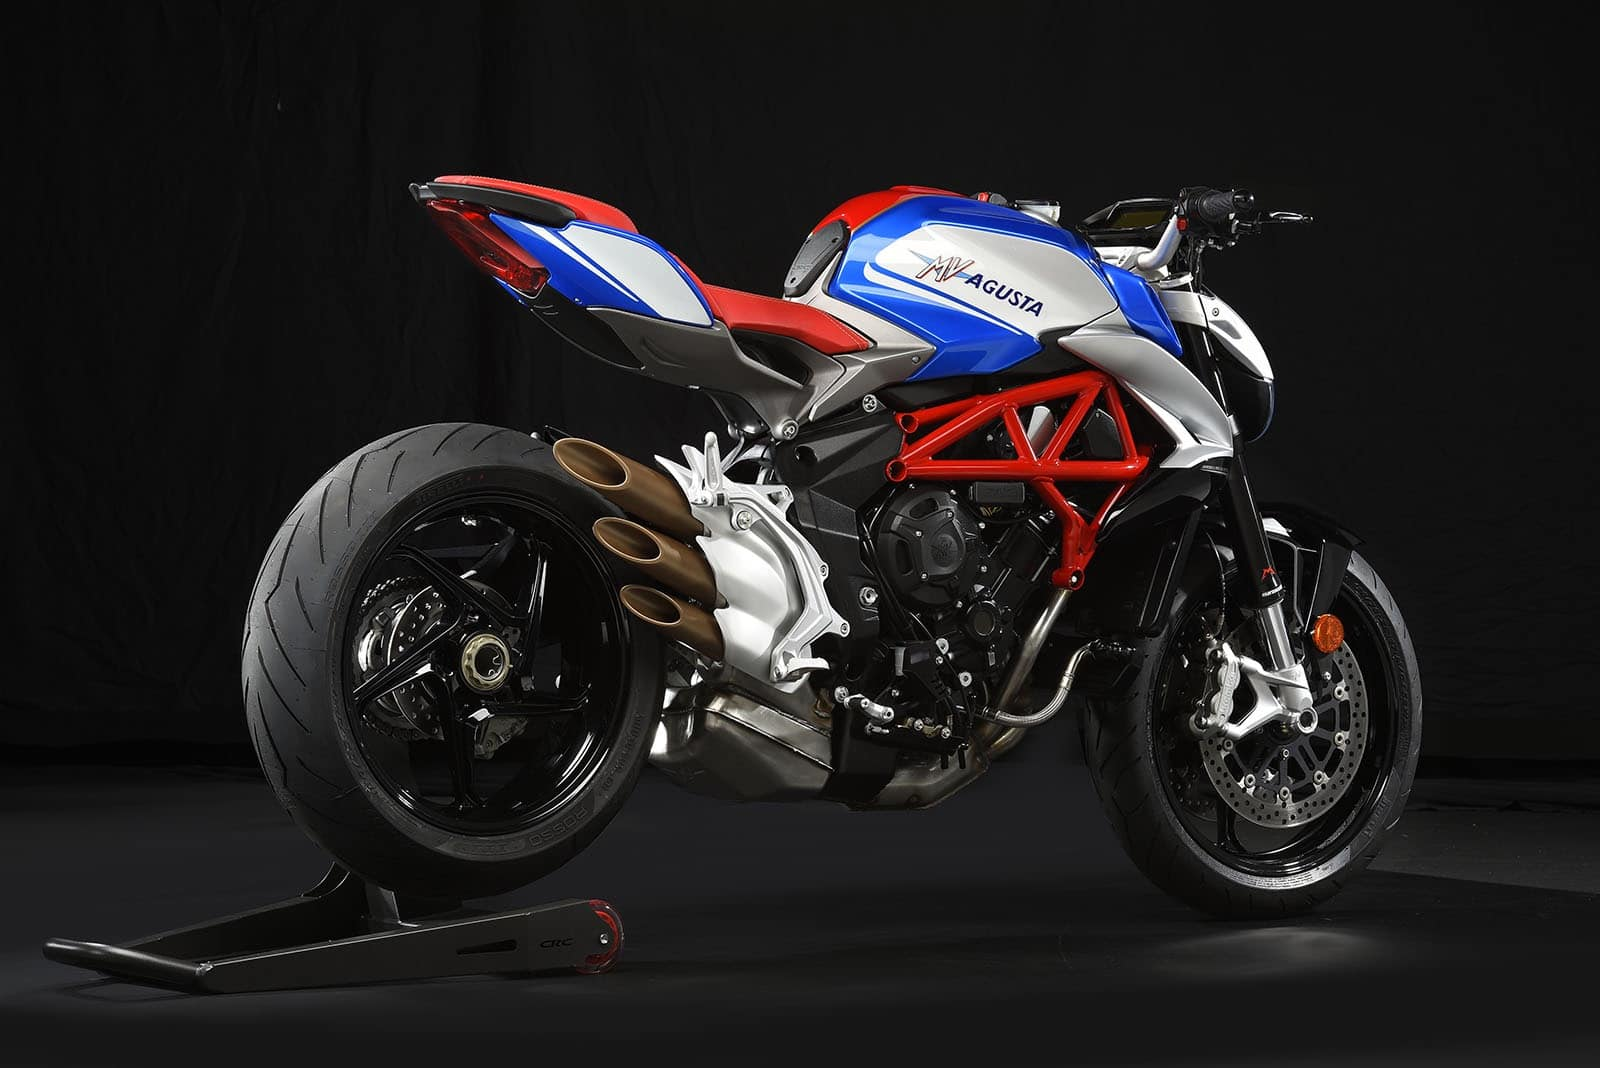 MV Agusta Brutale America - an extremely attractive upright naked motorcycle